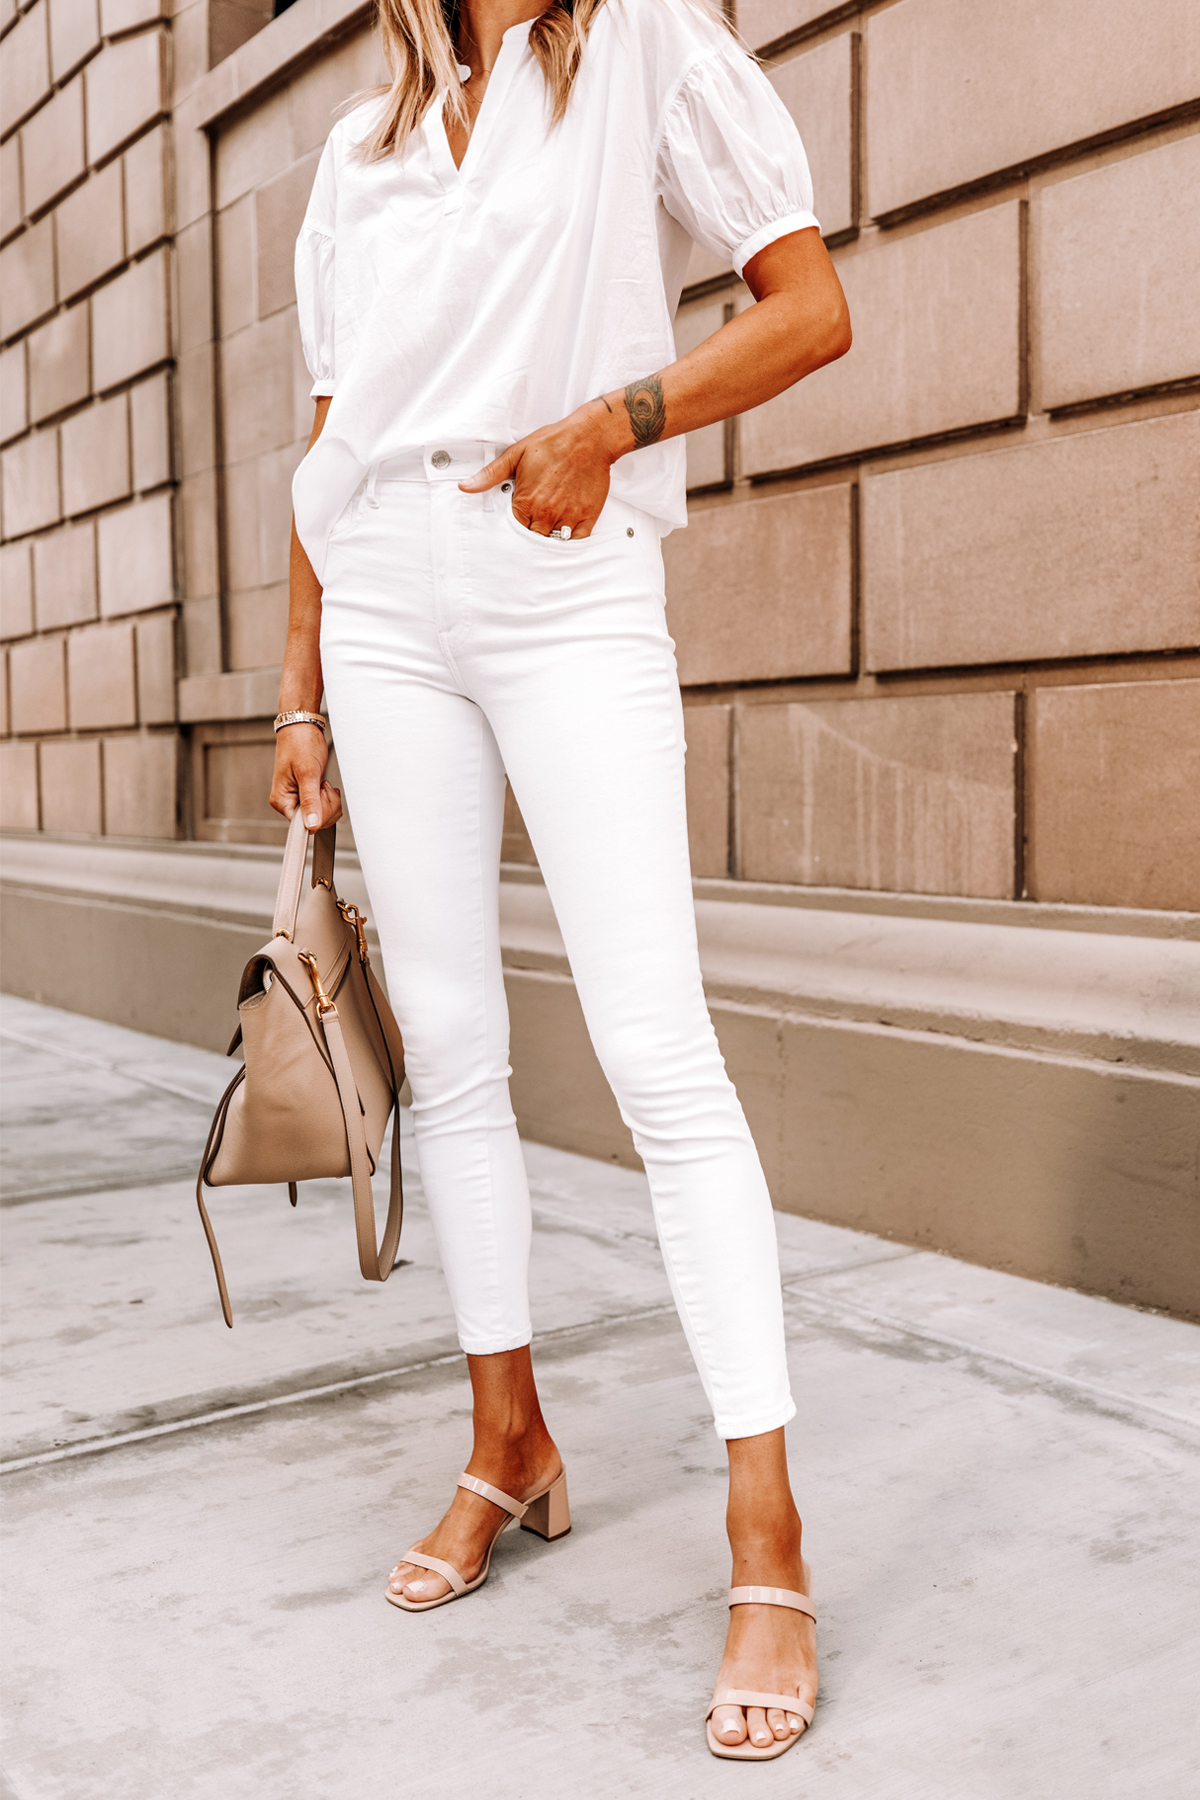 Fashion Jackson Wearing Everlane White Top Everlane White Skinny Jeans Tan Block Heel Sandals